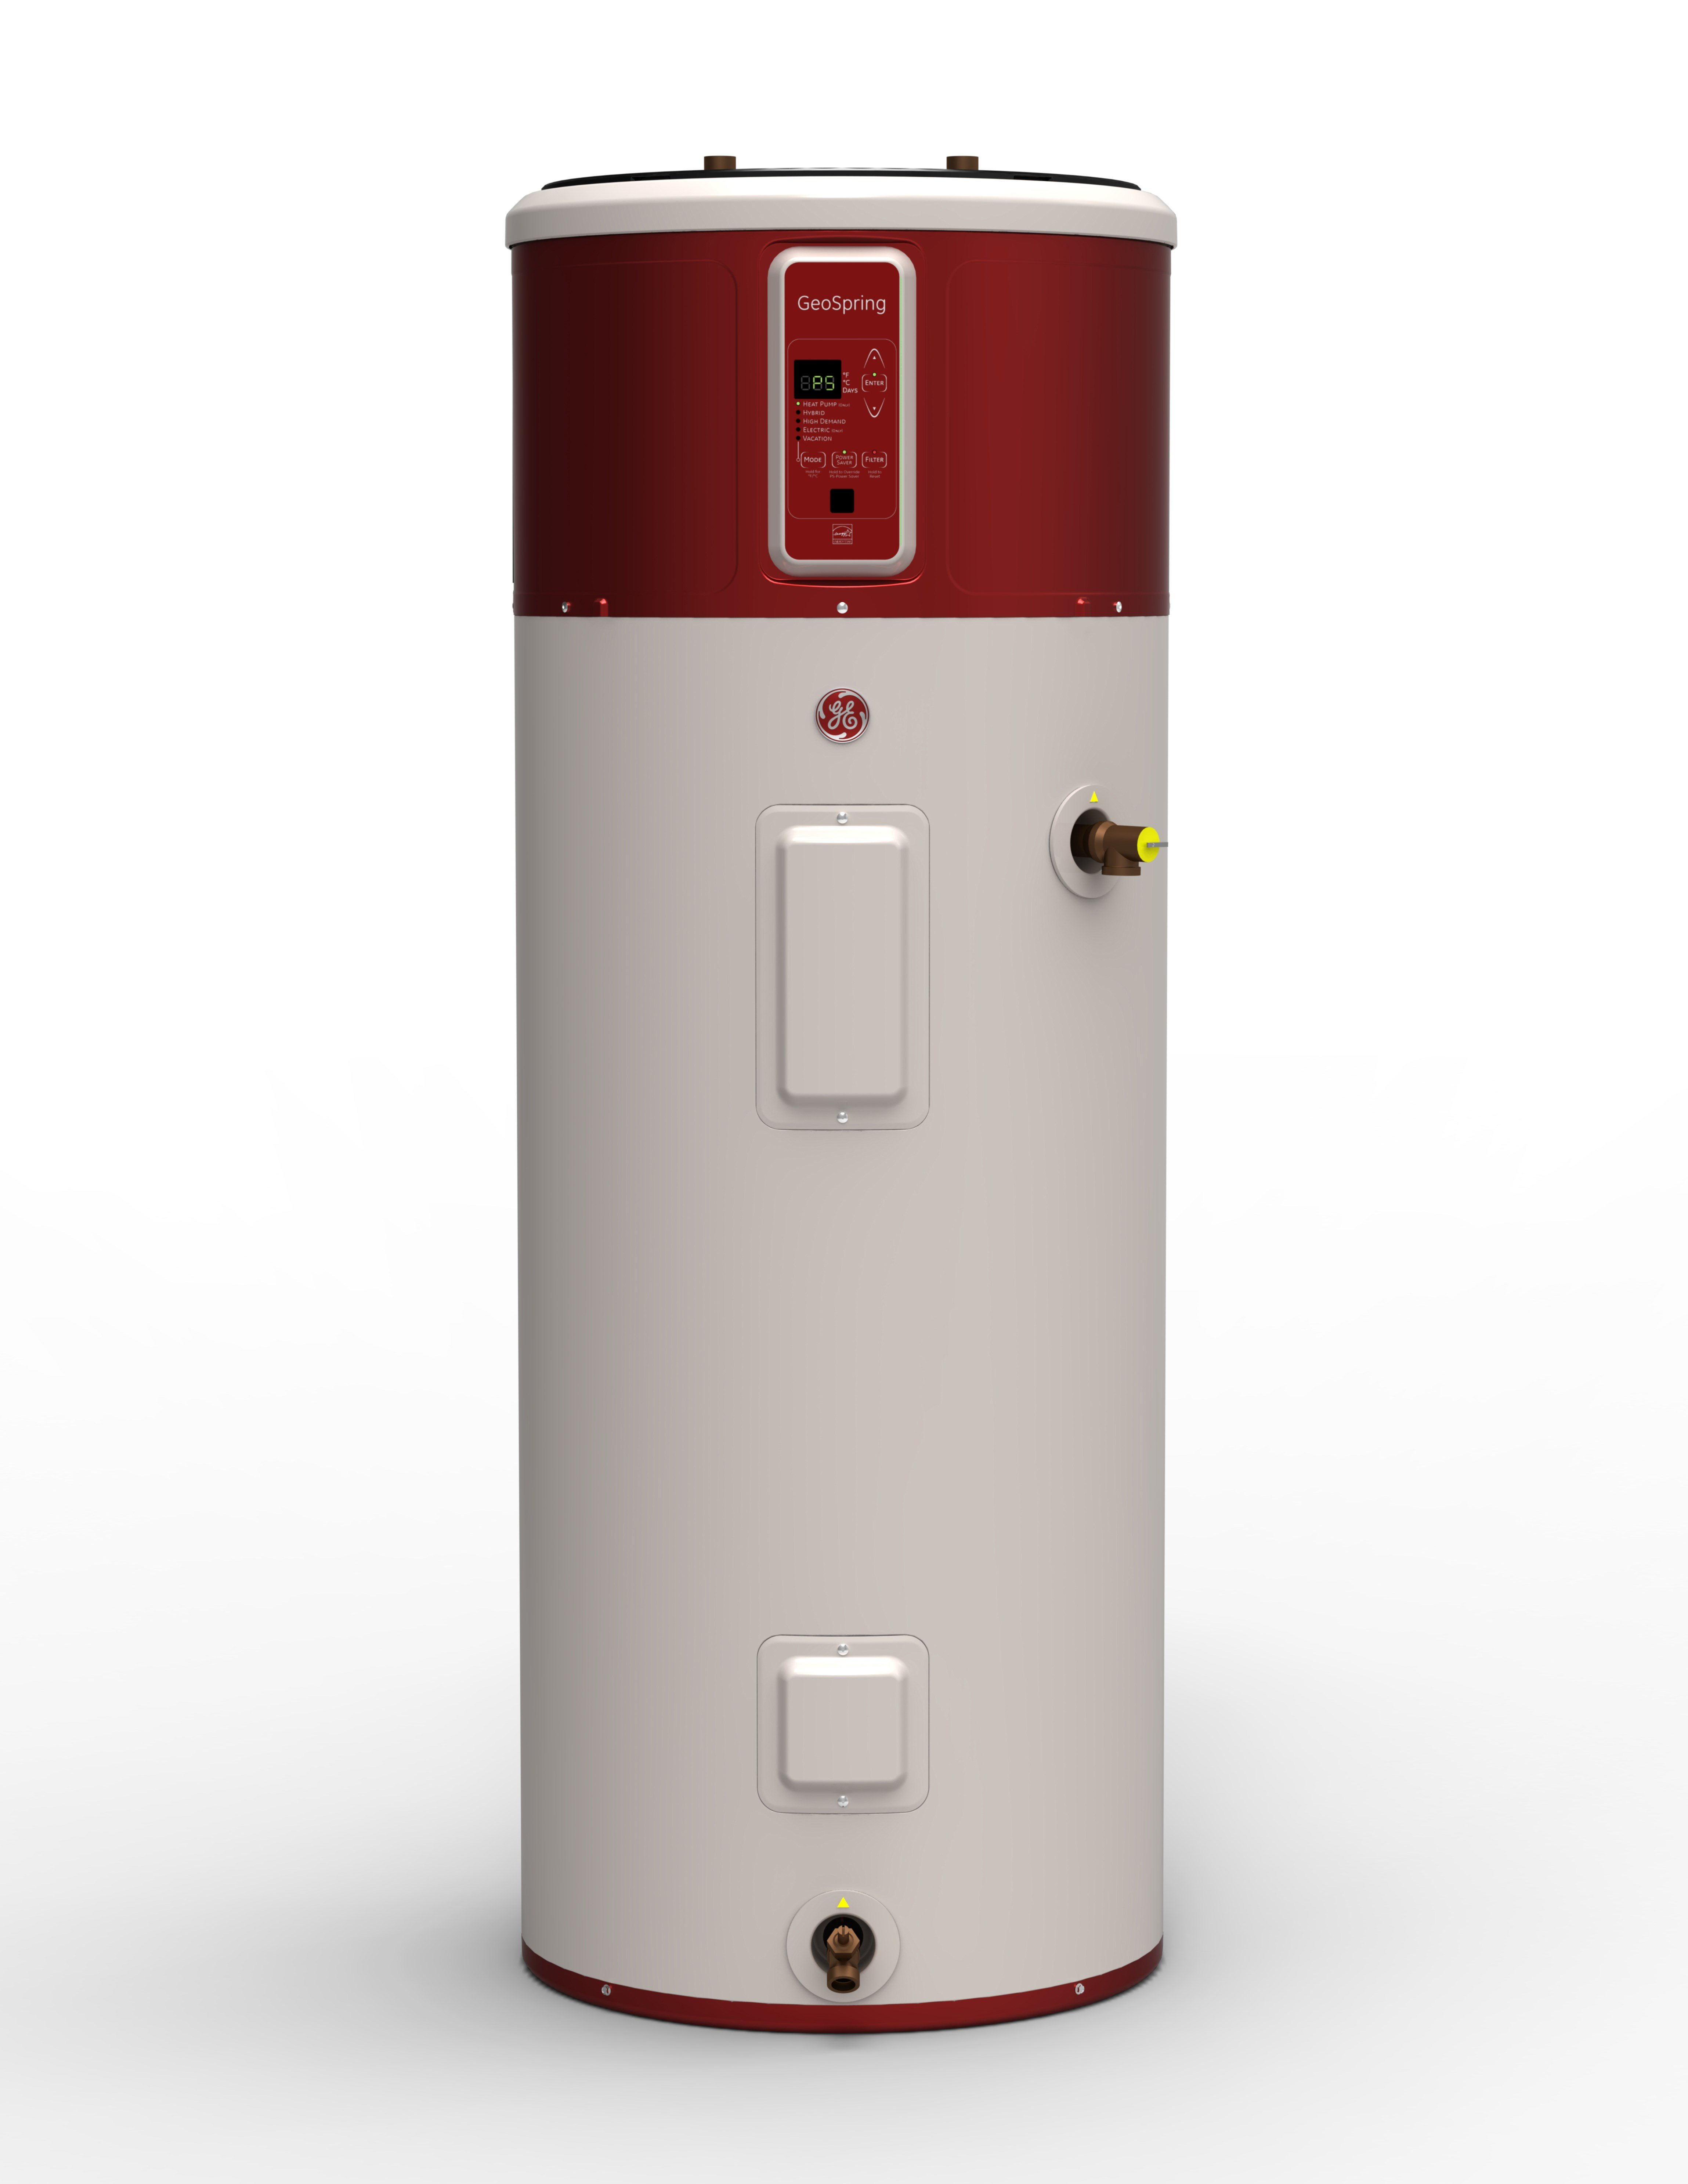 The GeoSpring hybrid electric water heater (GE Appliances)